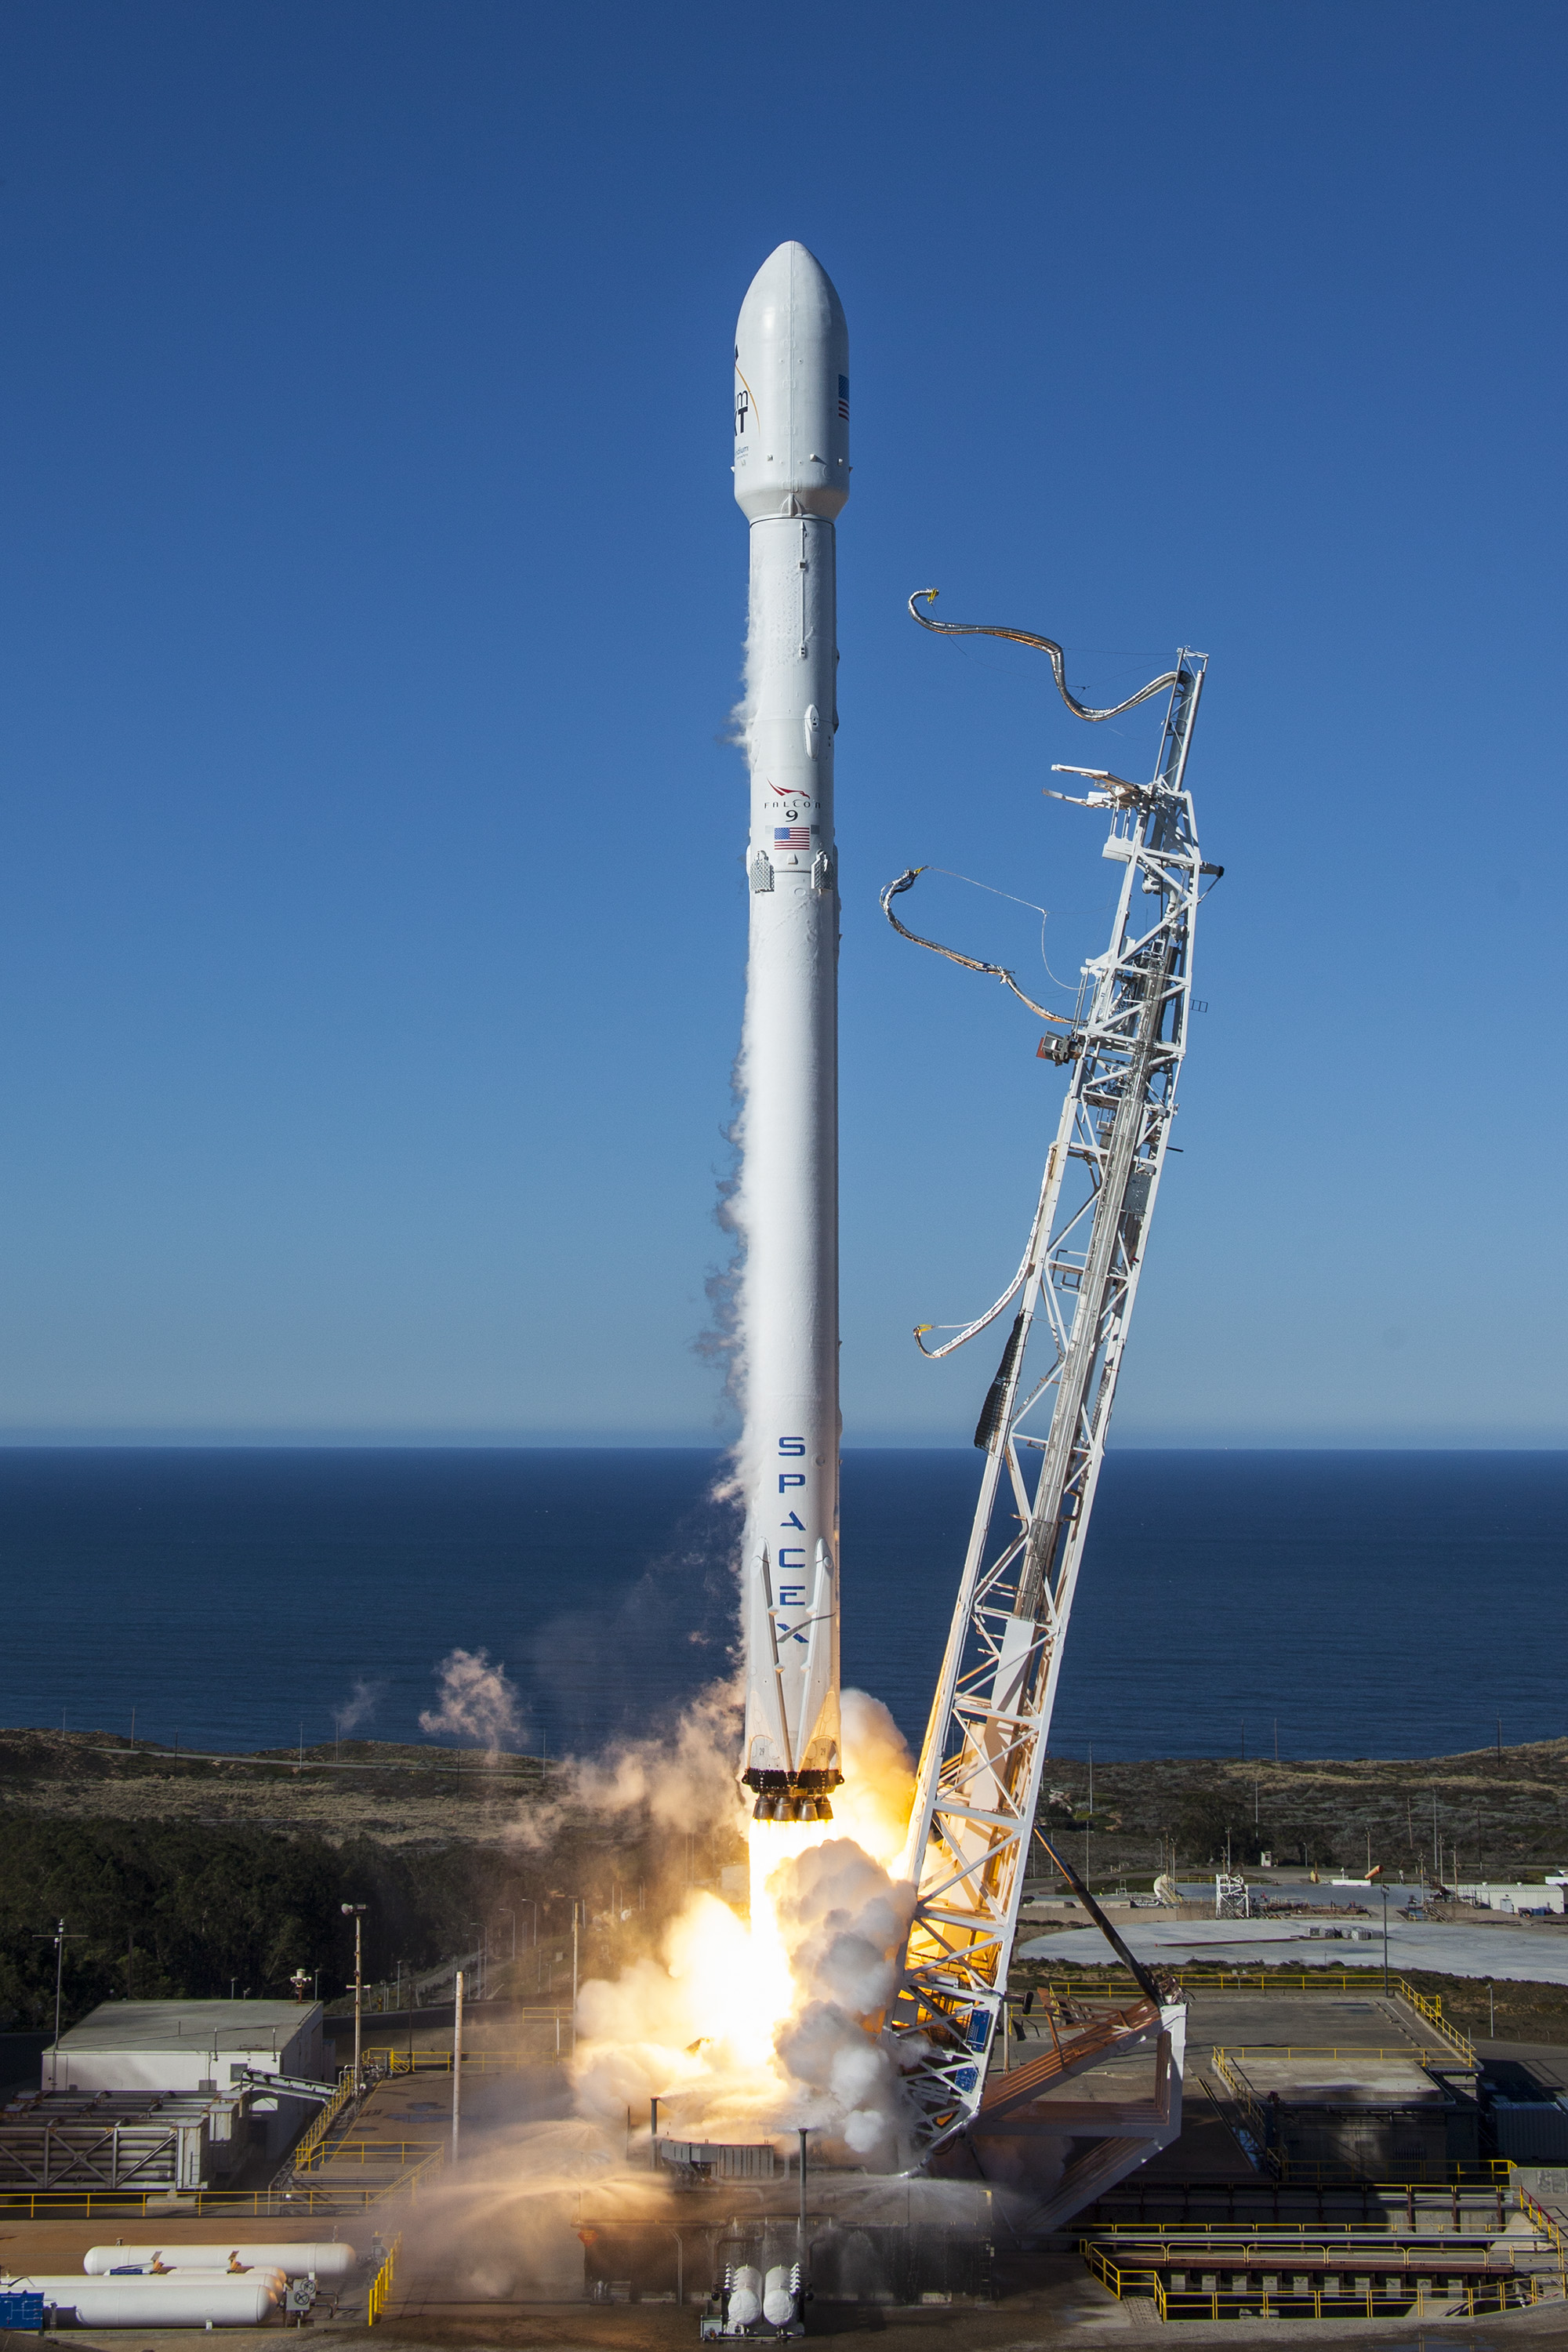 SpaceX launch vehicle